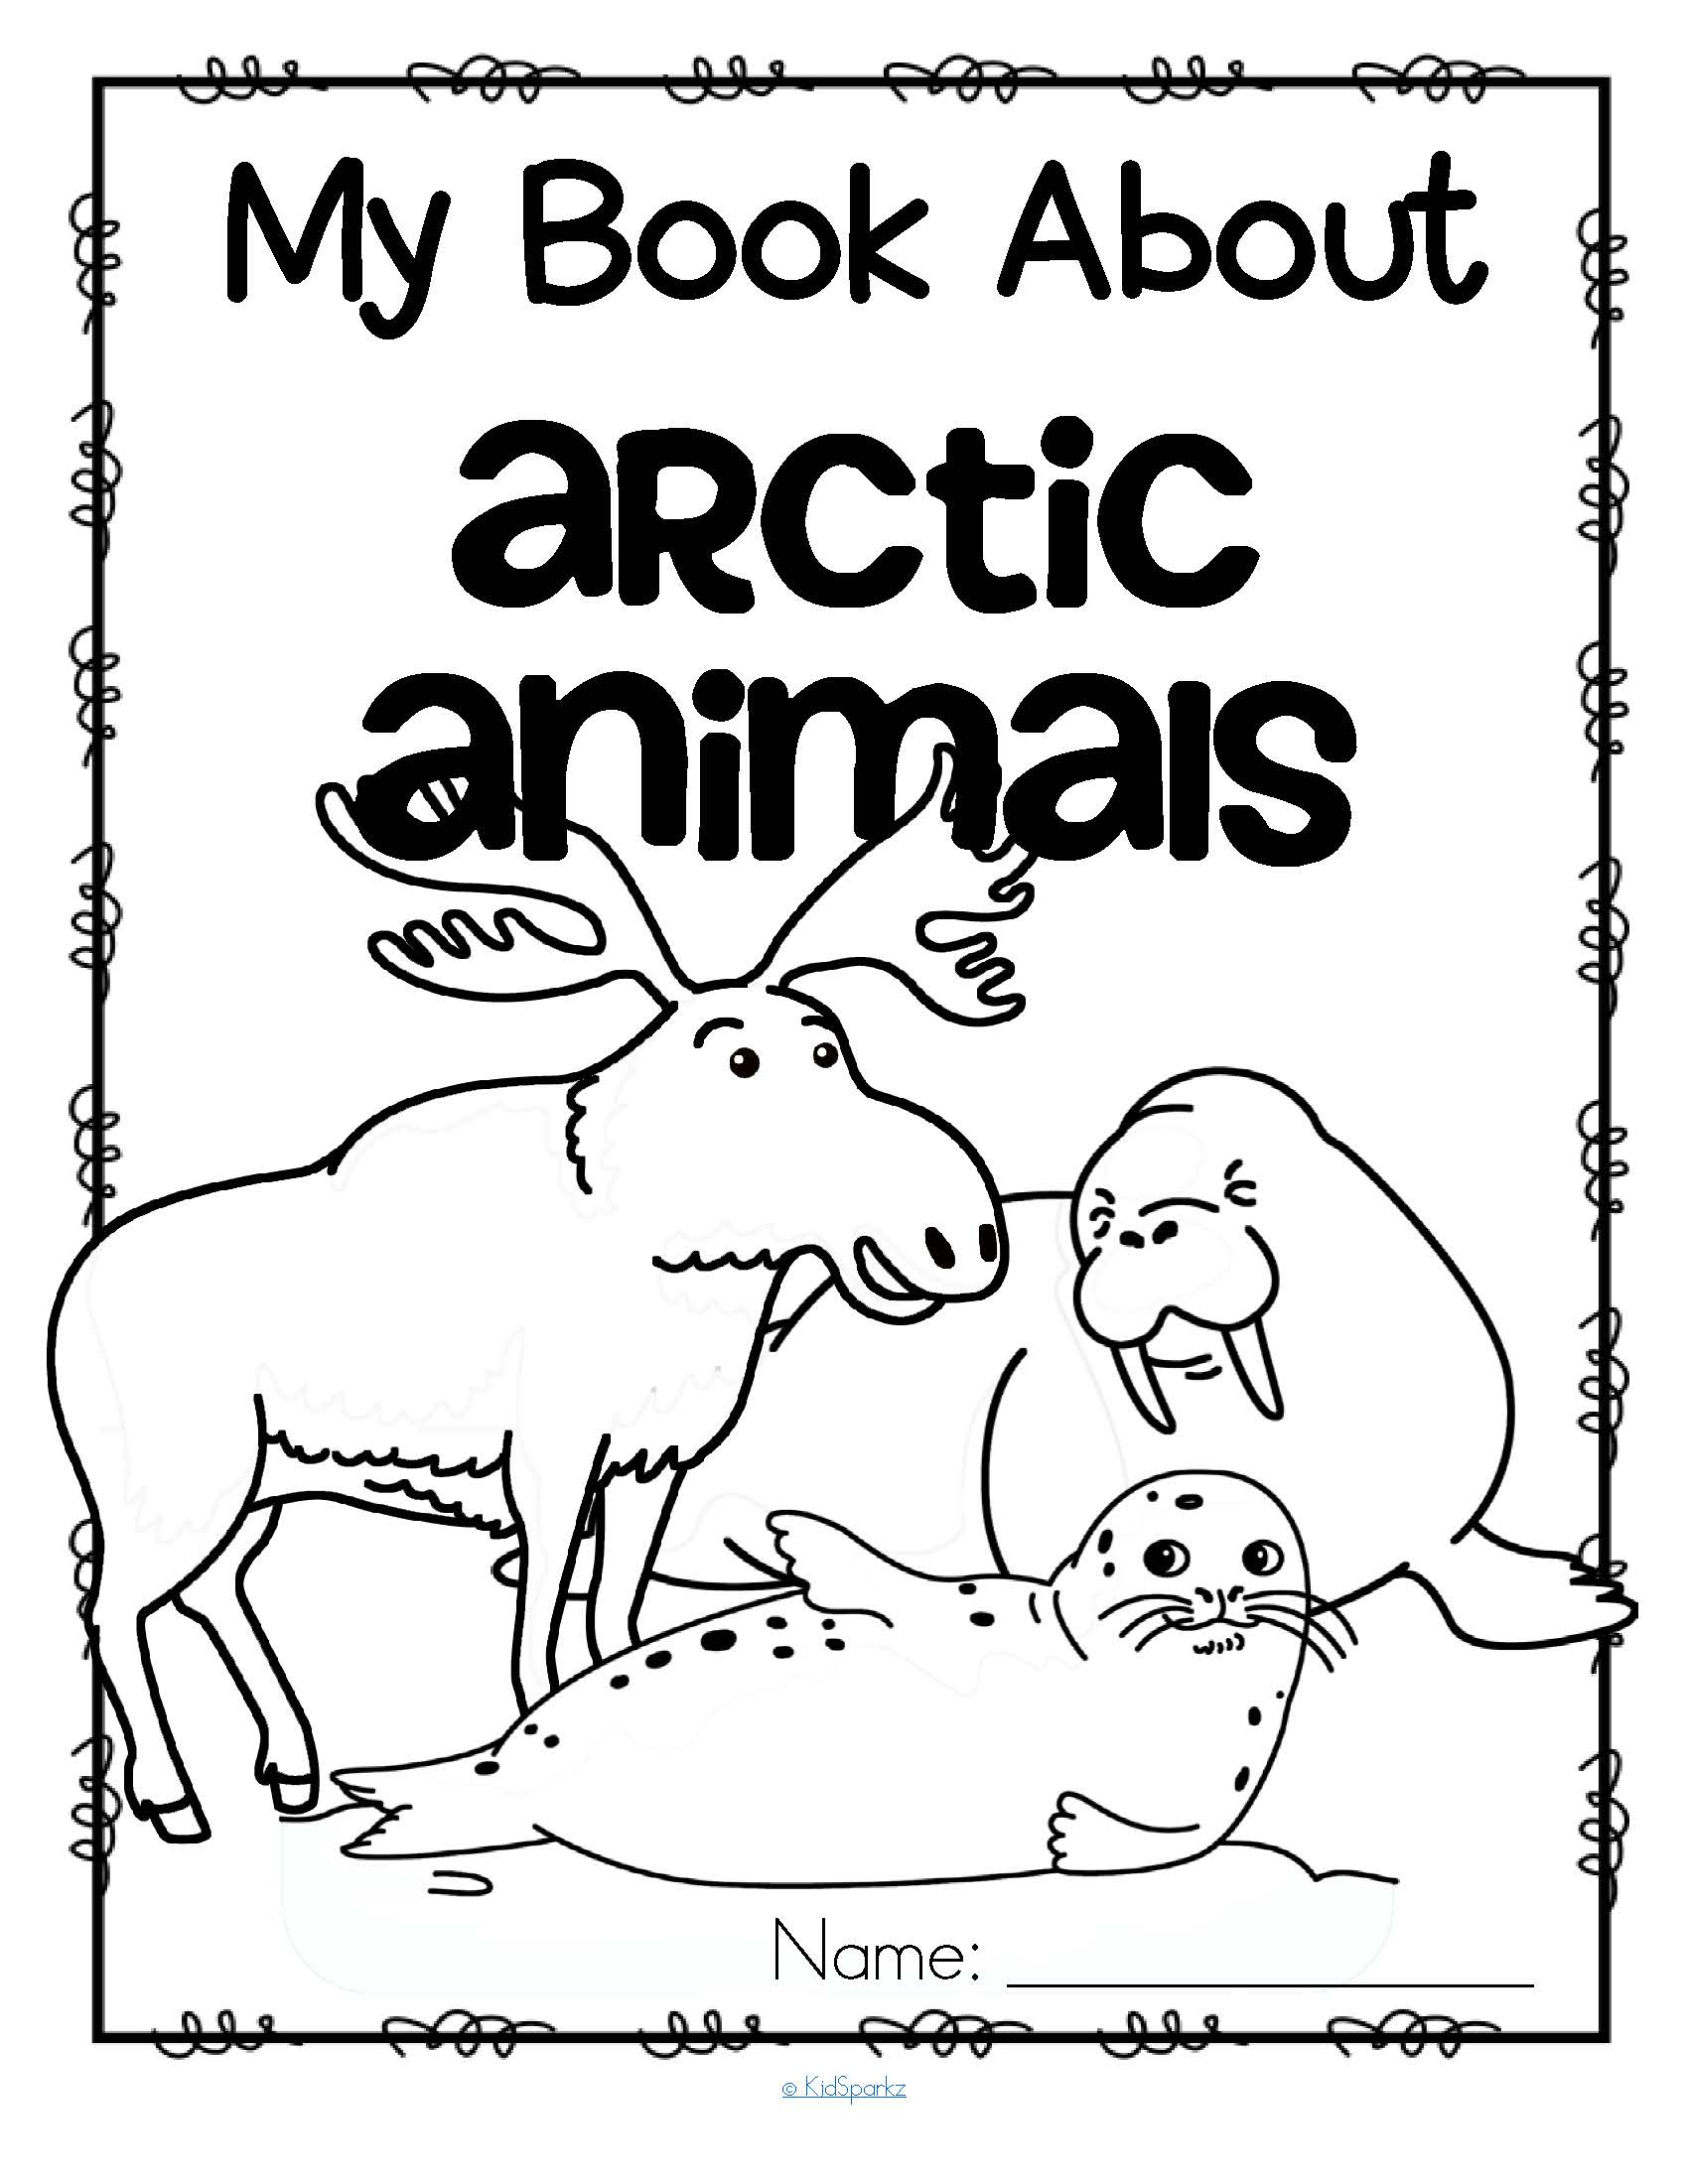 My Book About Arctic Animals